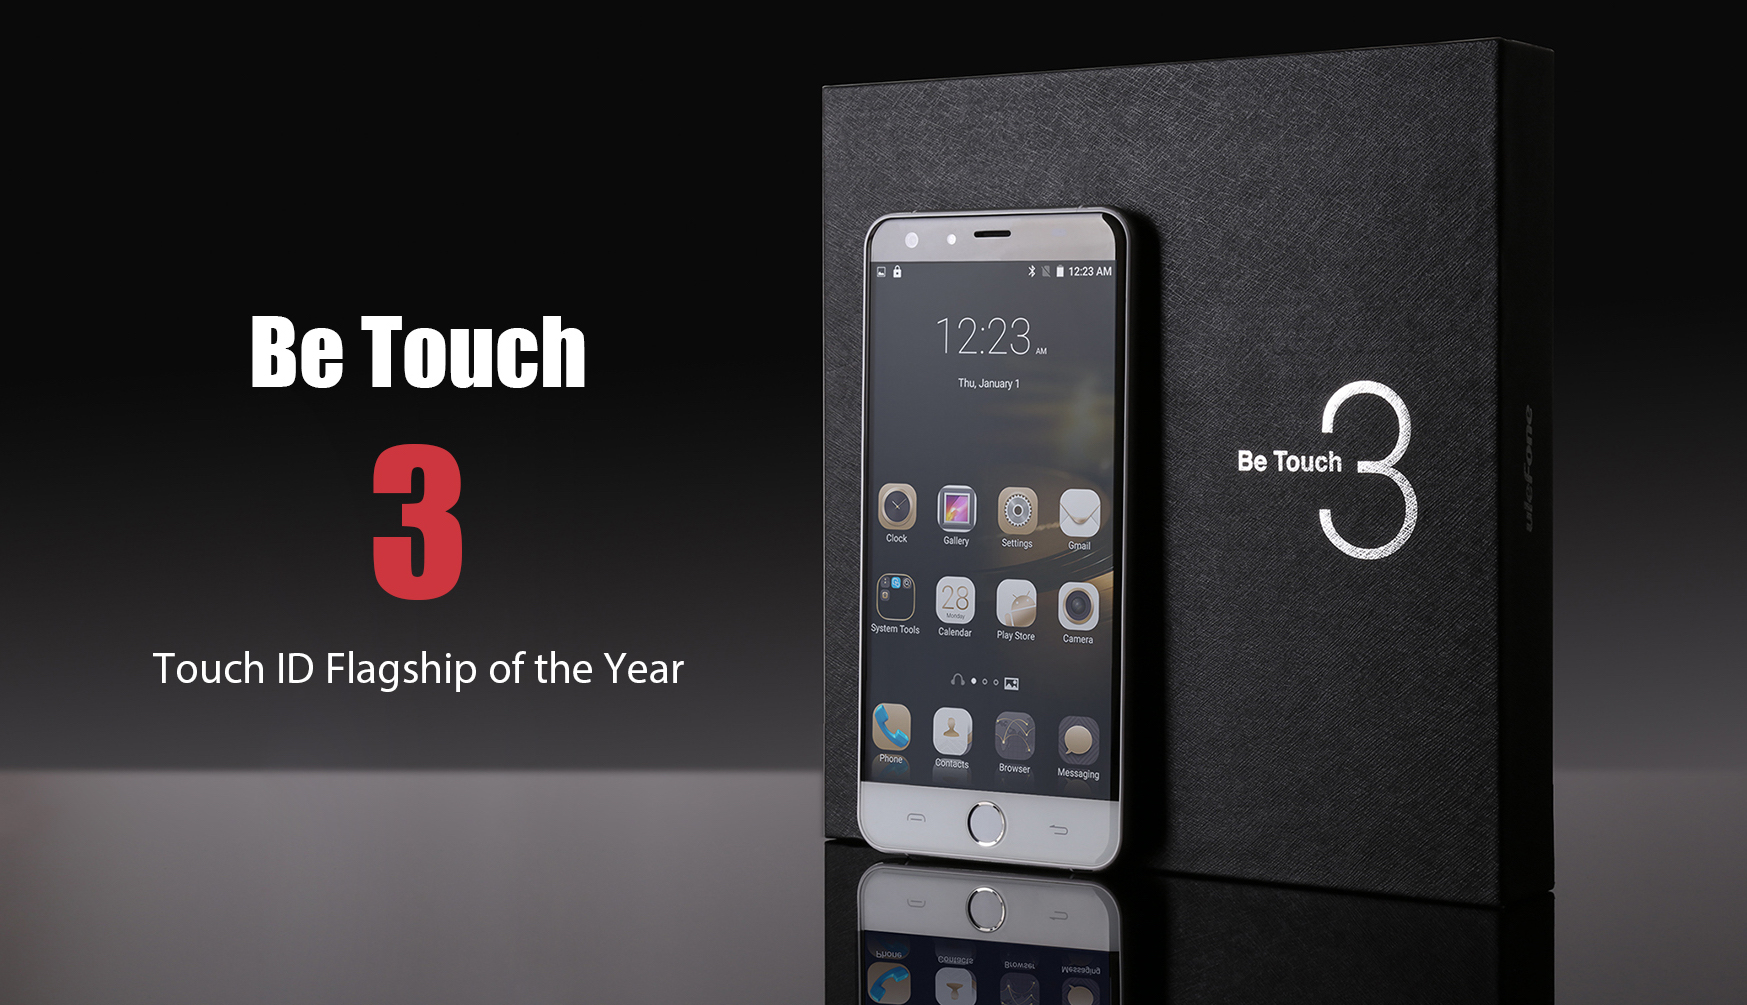 ulefone be touch 3 -3